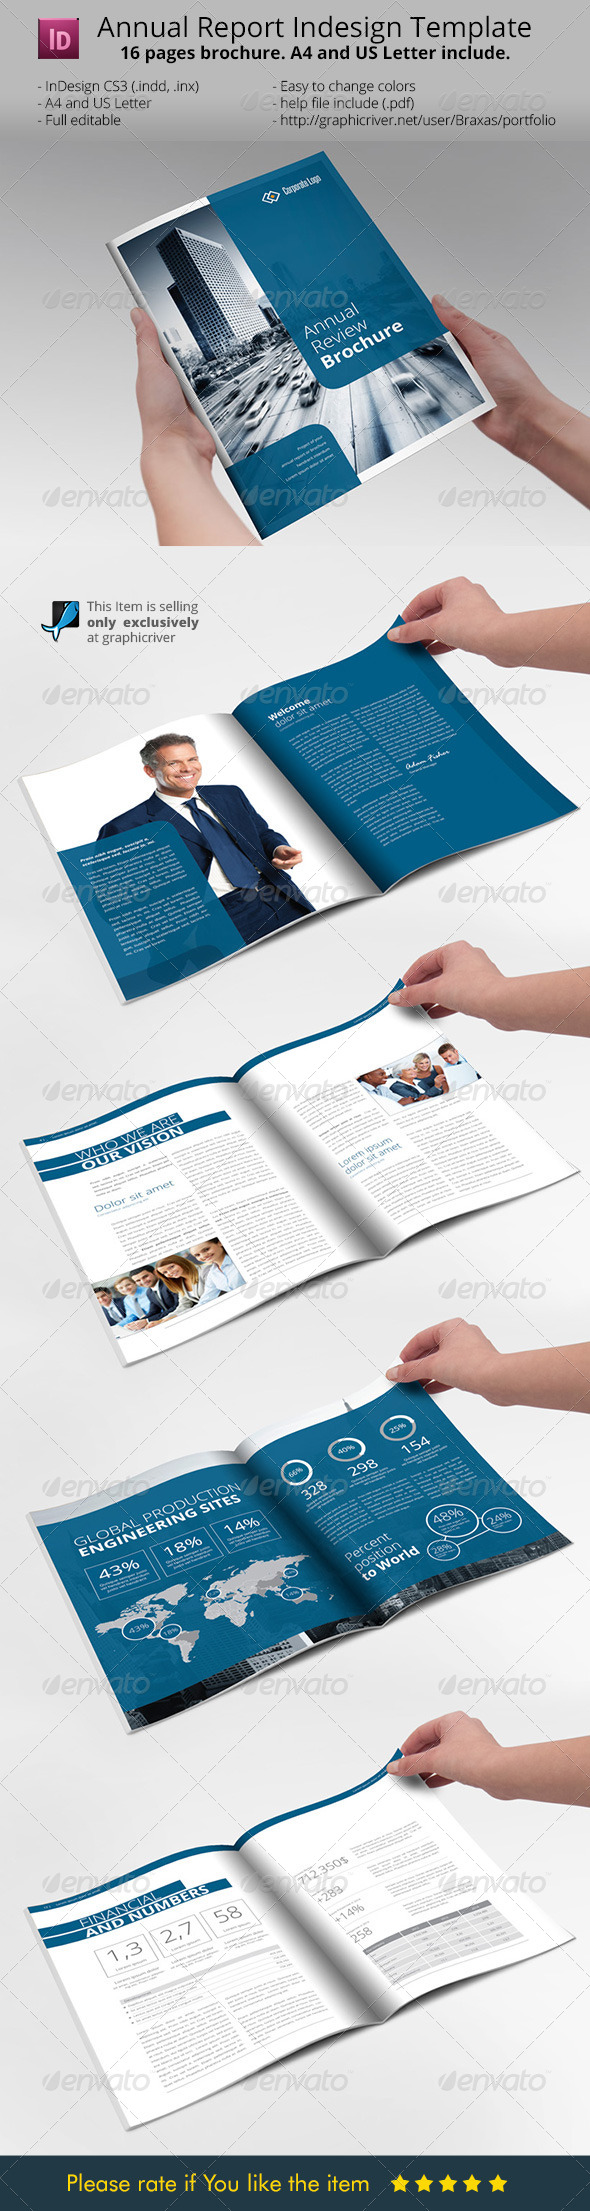 Annual Report Template InDesign Graphics Designs Templates - Annual report template indesign